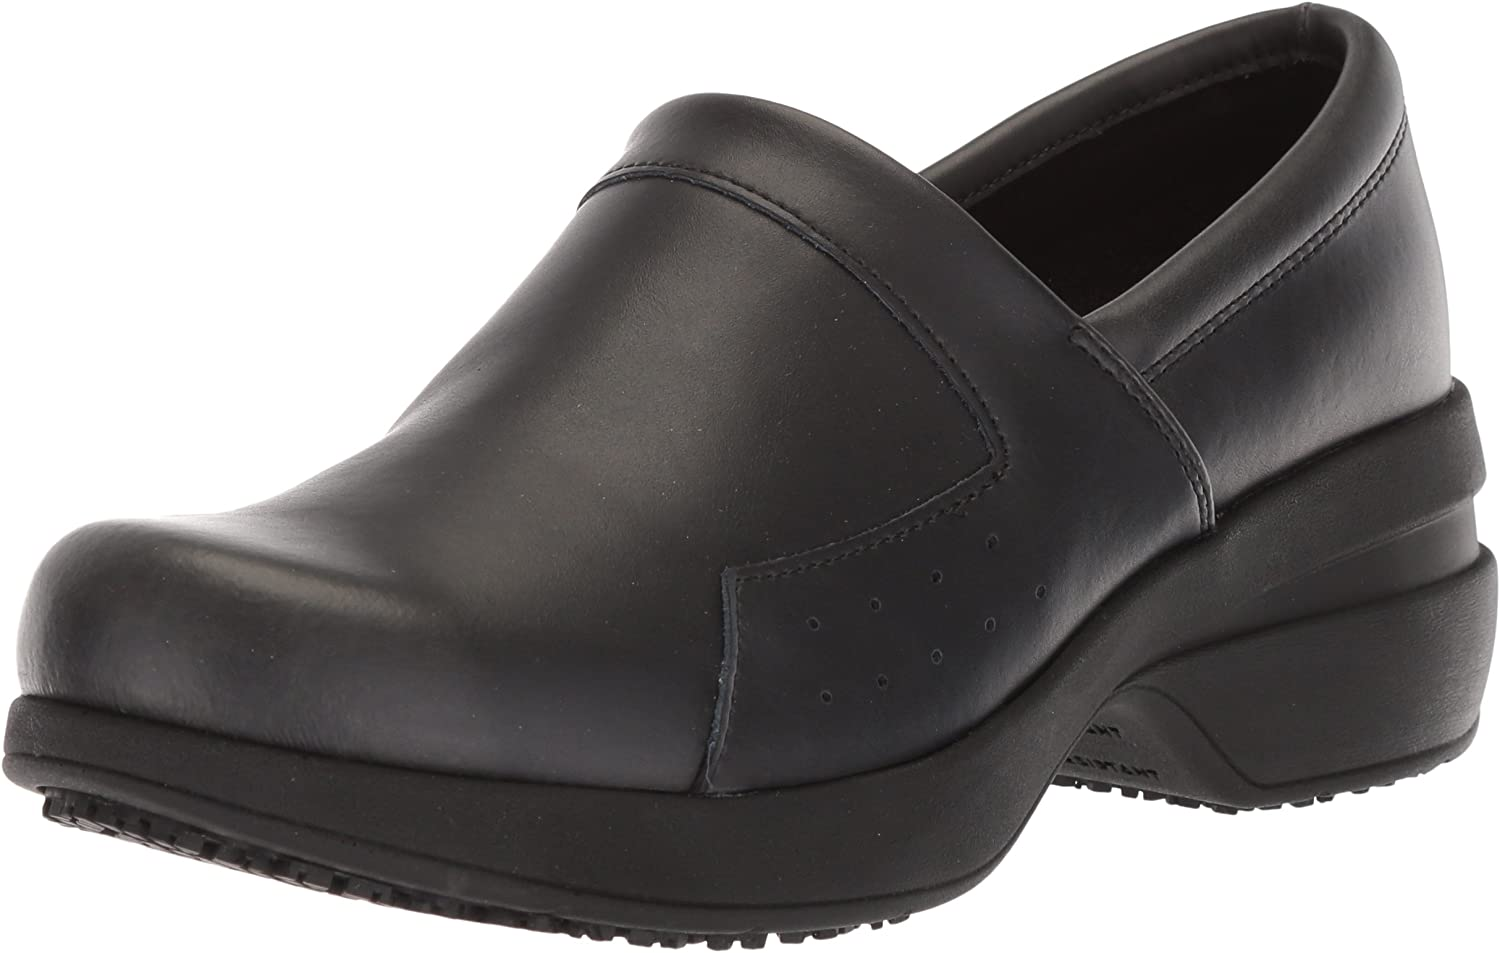 Wolverine Womens Xpedite Sr Slip-on Food Service shoes